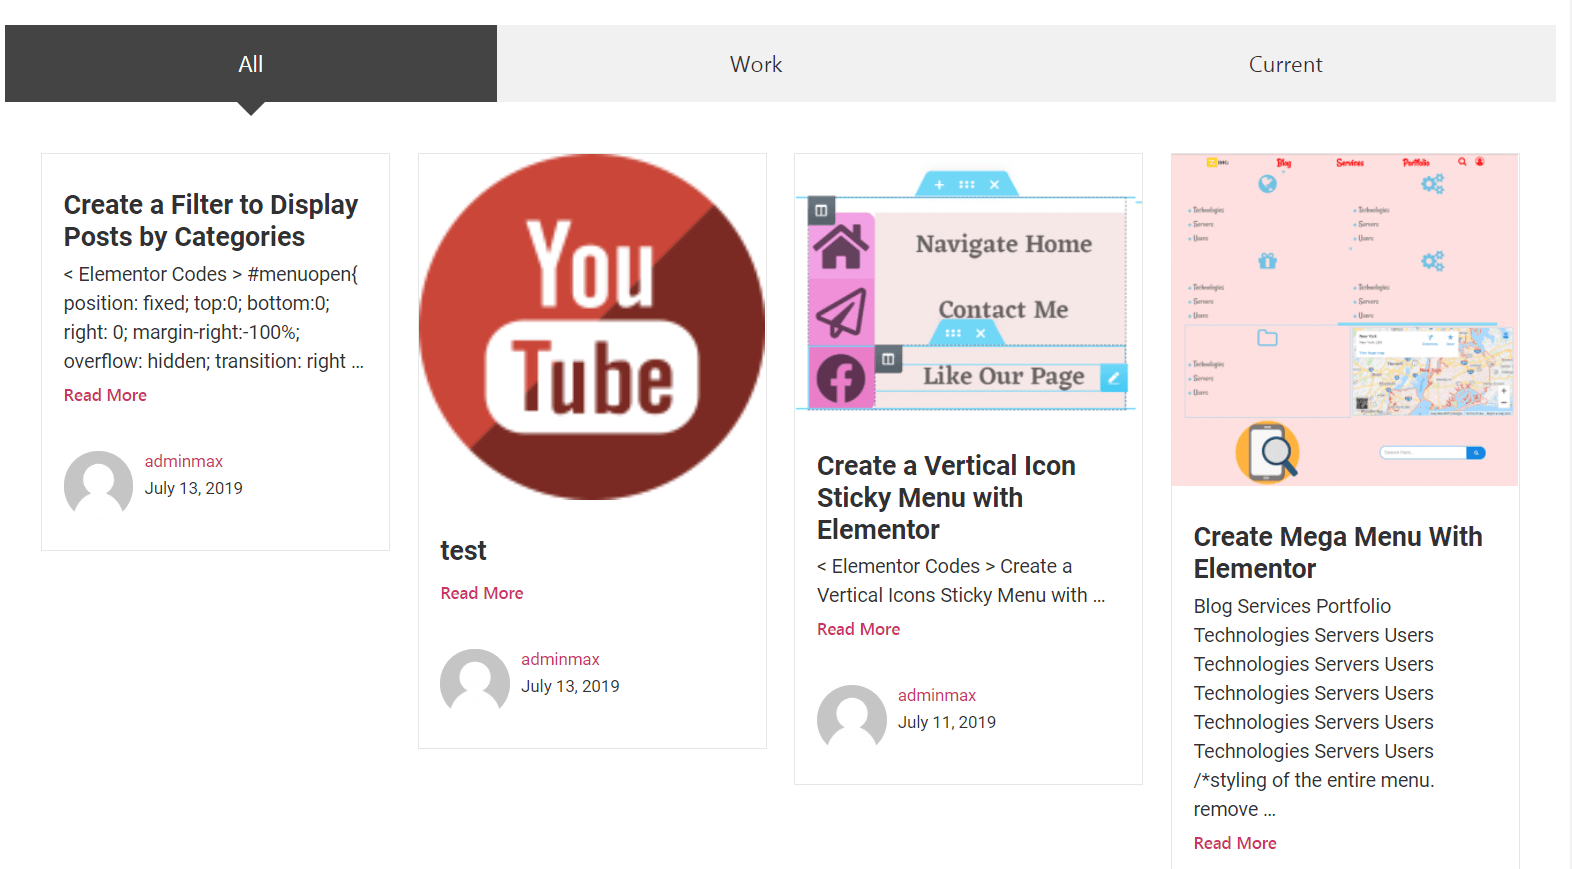 Create a Filter to Display Posts by Categories